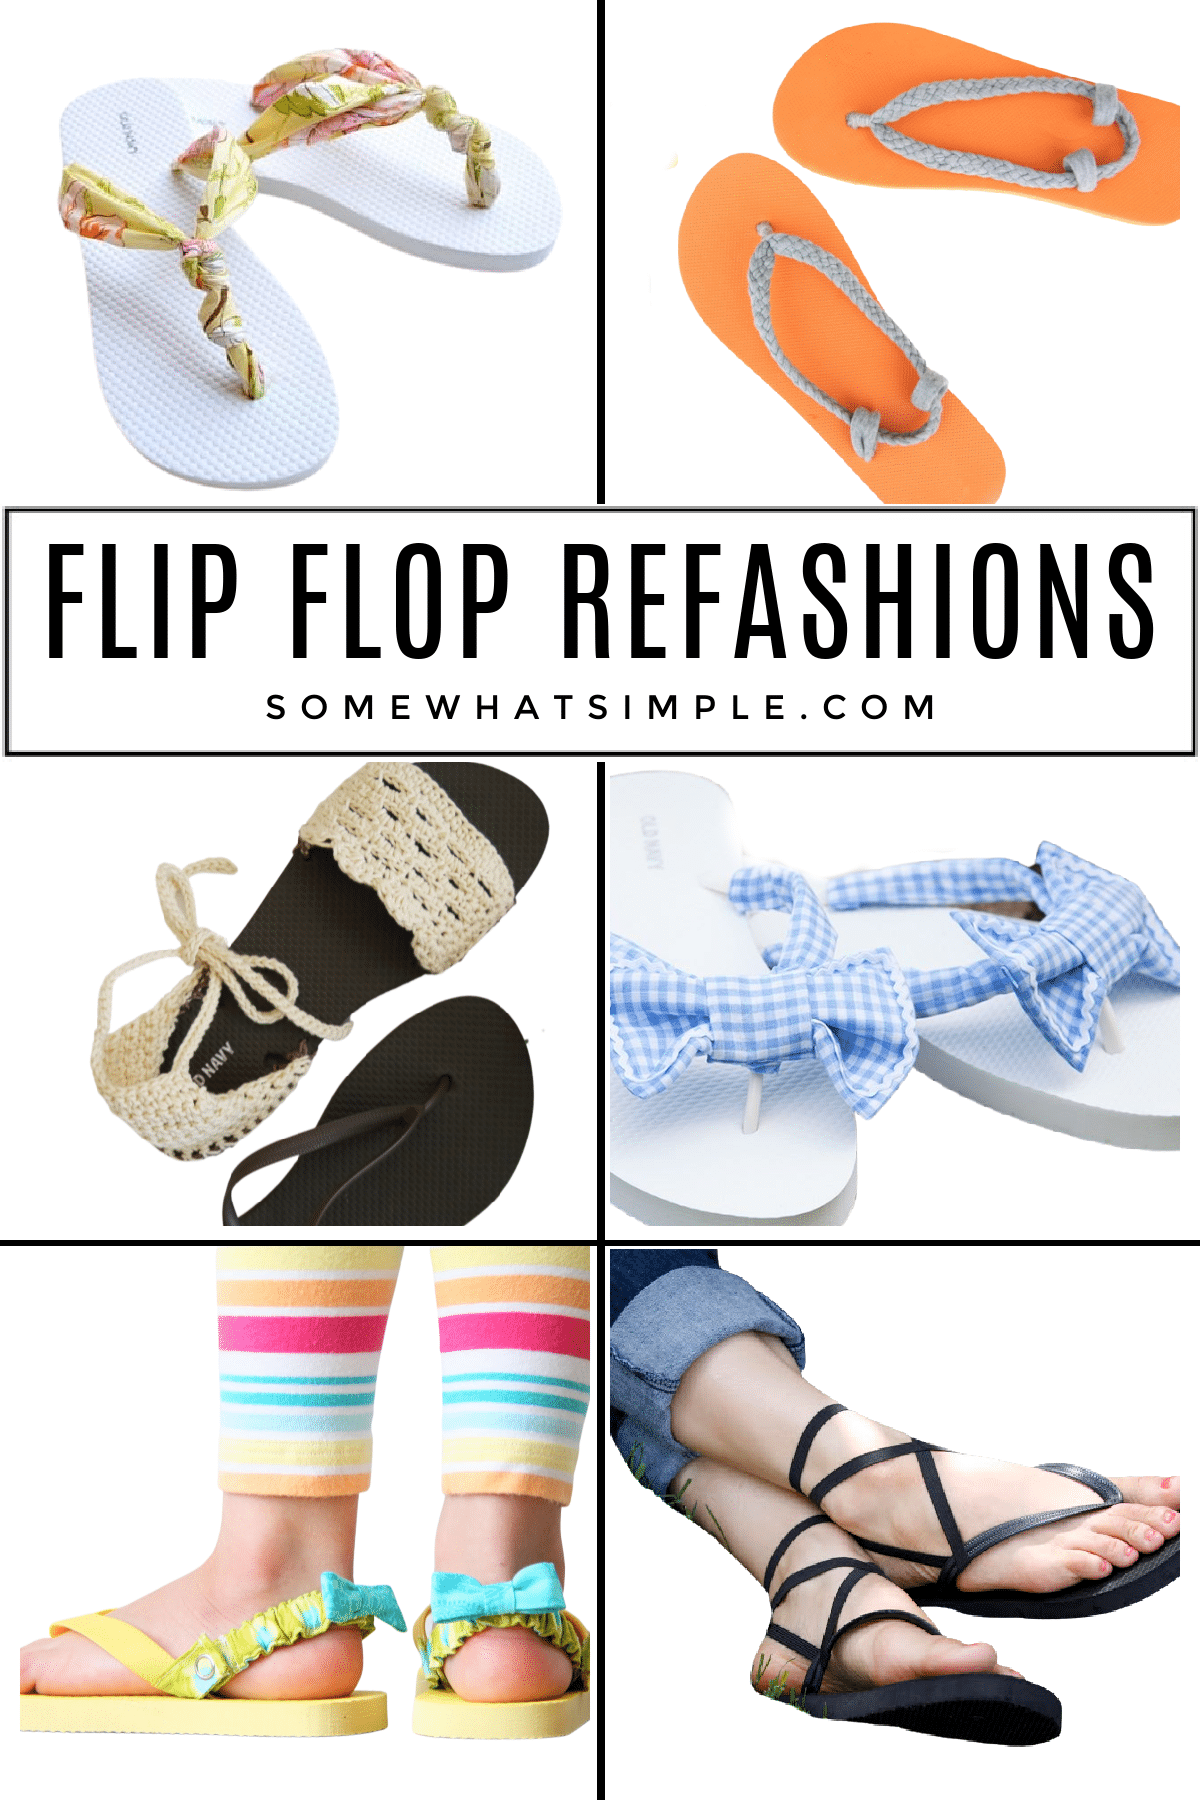 Add some fun to your feet with 10 favorite DIY Flip Flop Ideas! Easy, affordable, and perfect for the summertime! via @somewhatsimple